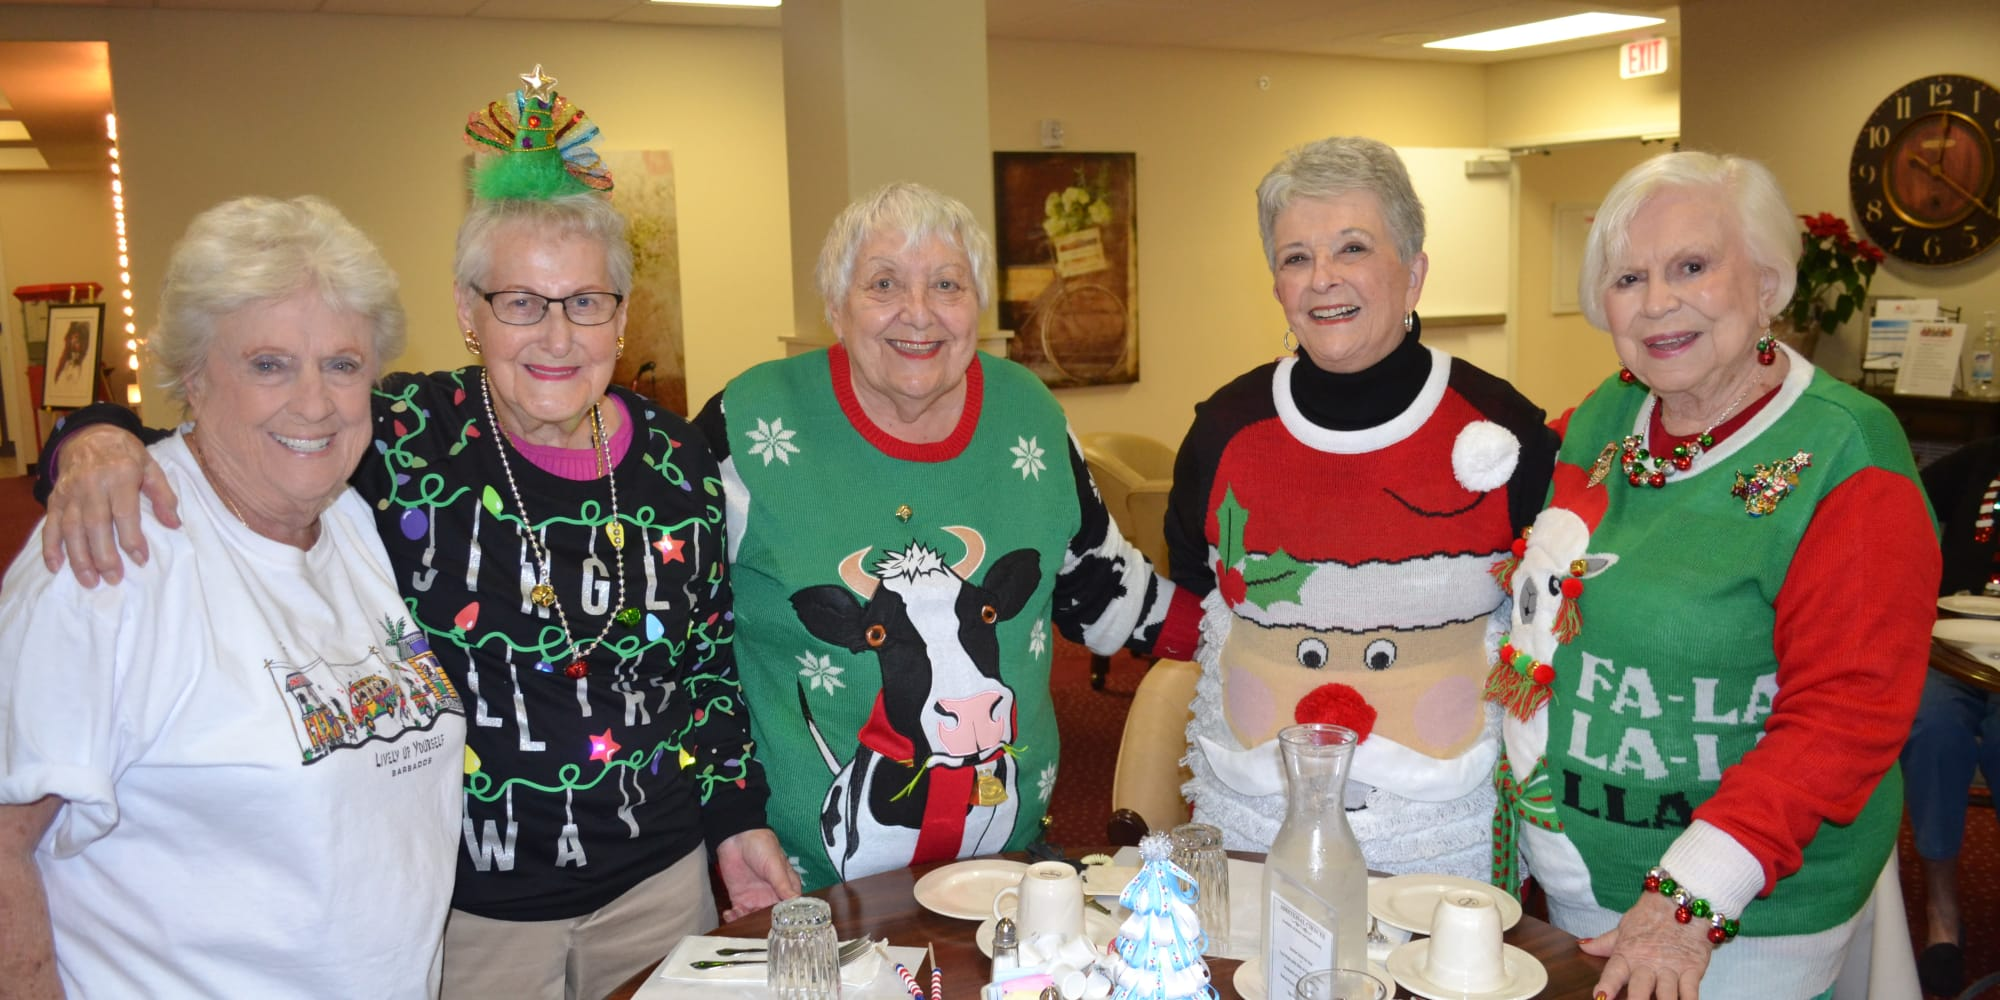 Residents in festive holiday sweaters at Edgewood Point Assisted Living in Beaverton, Oregon